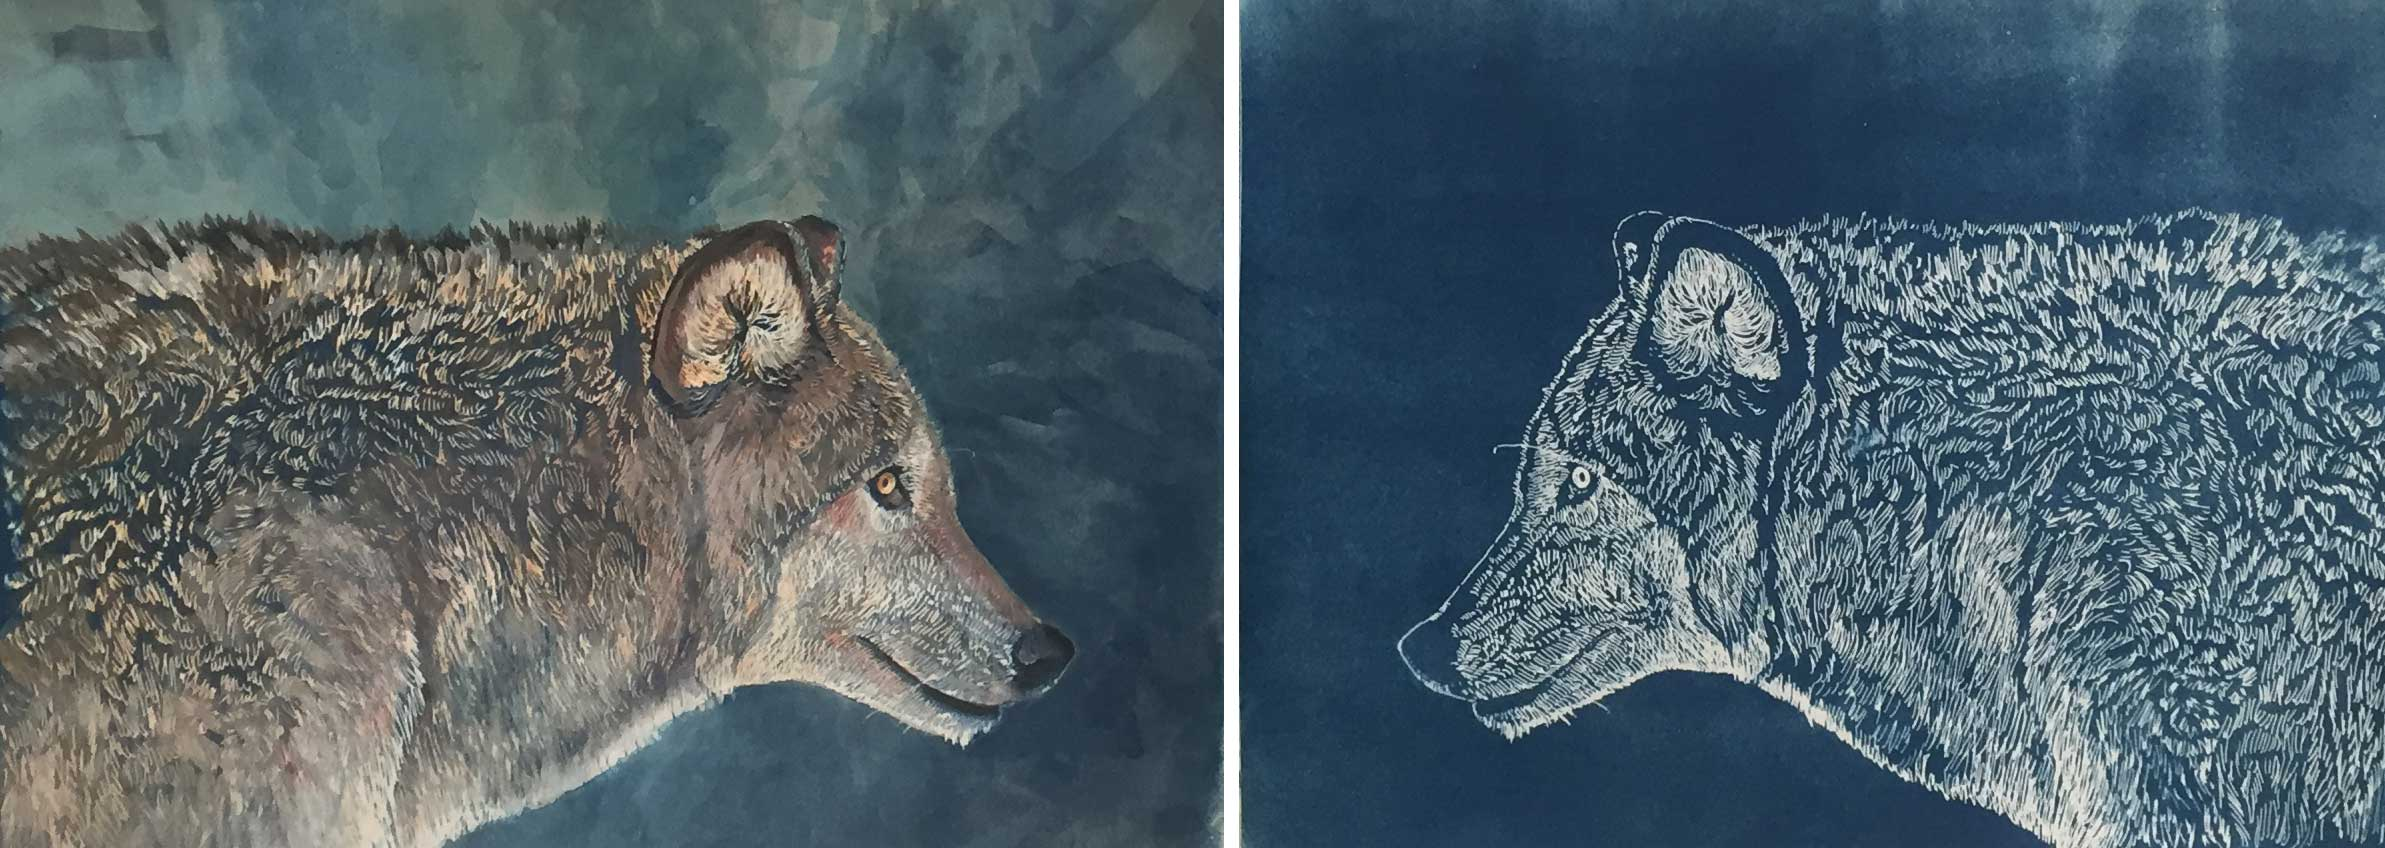 """Wolves. Both are 9 x 12"""" The left image is a print with gouache and colored pencil. The right image is the plain print."""